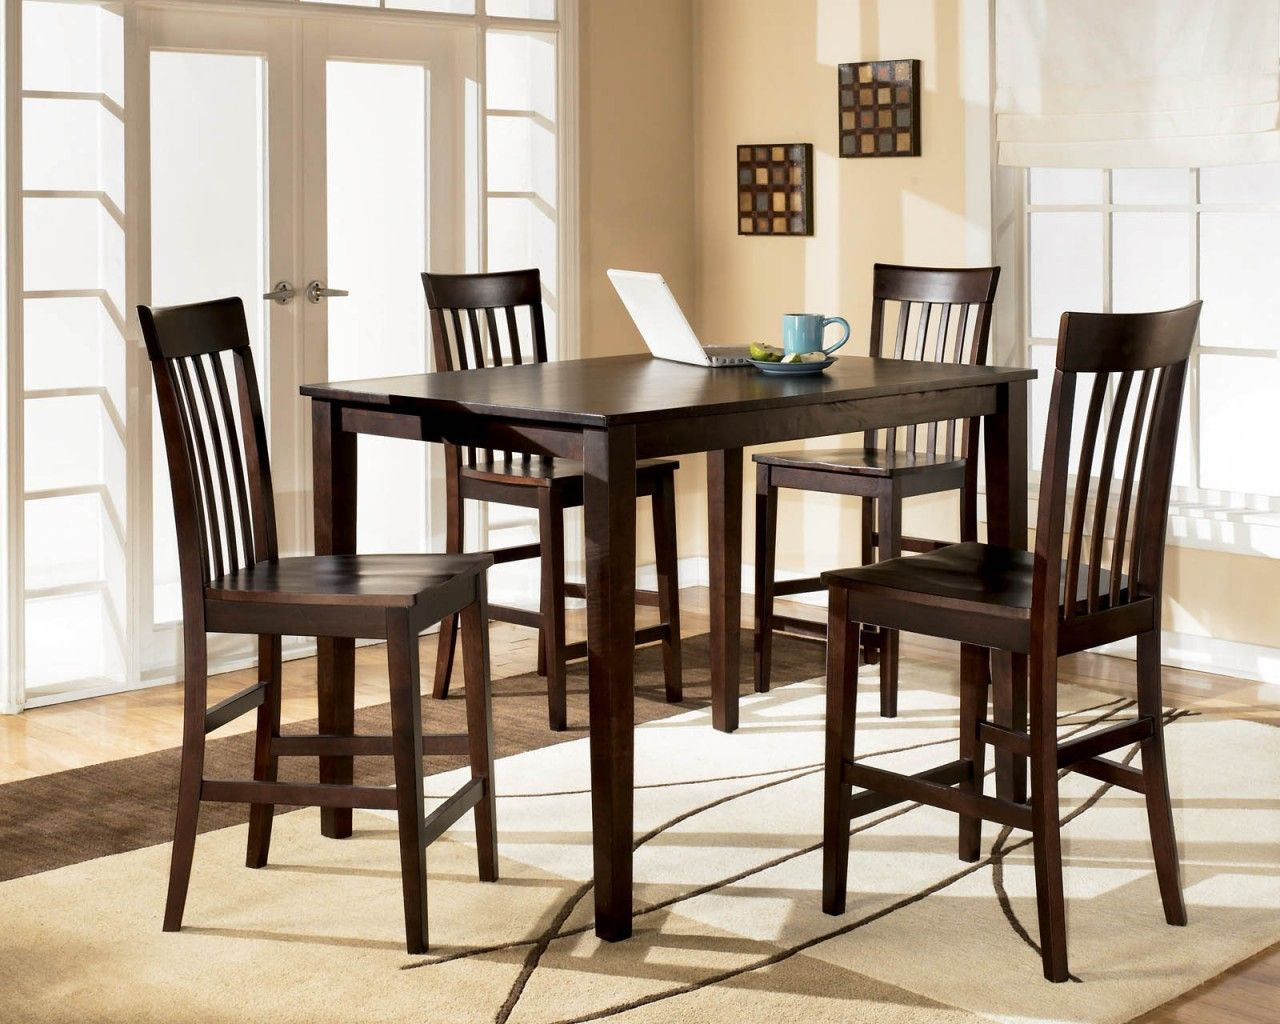 Hyland 5-Piece Rectangular Counter Height Dining Set 36 x 48 : 7 piece pub table set - pezcame.com